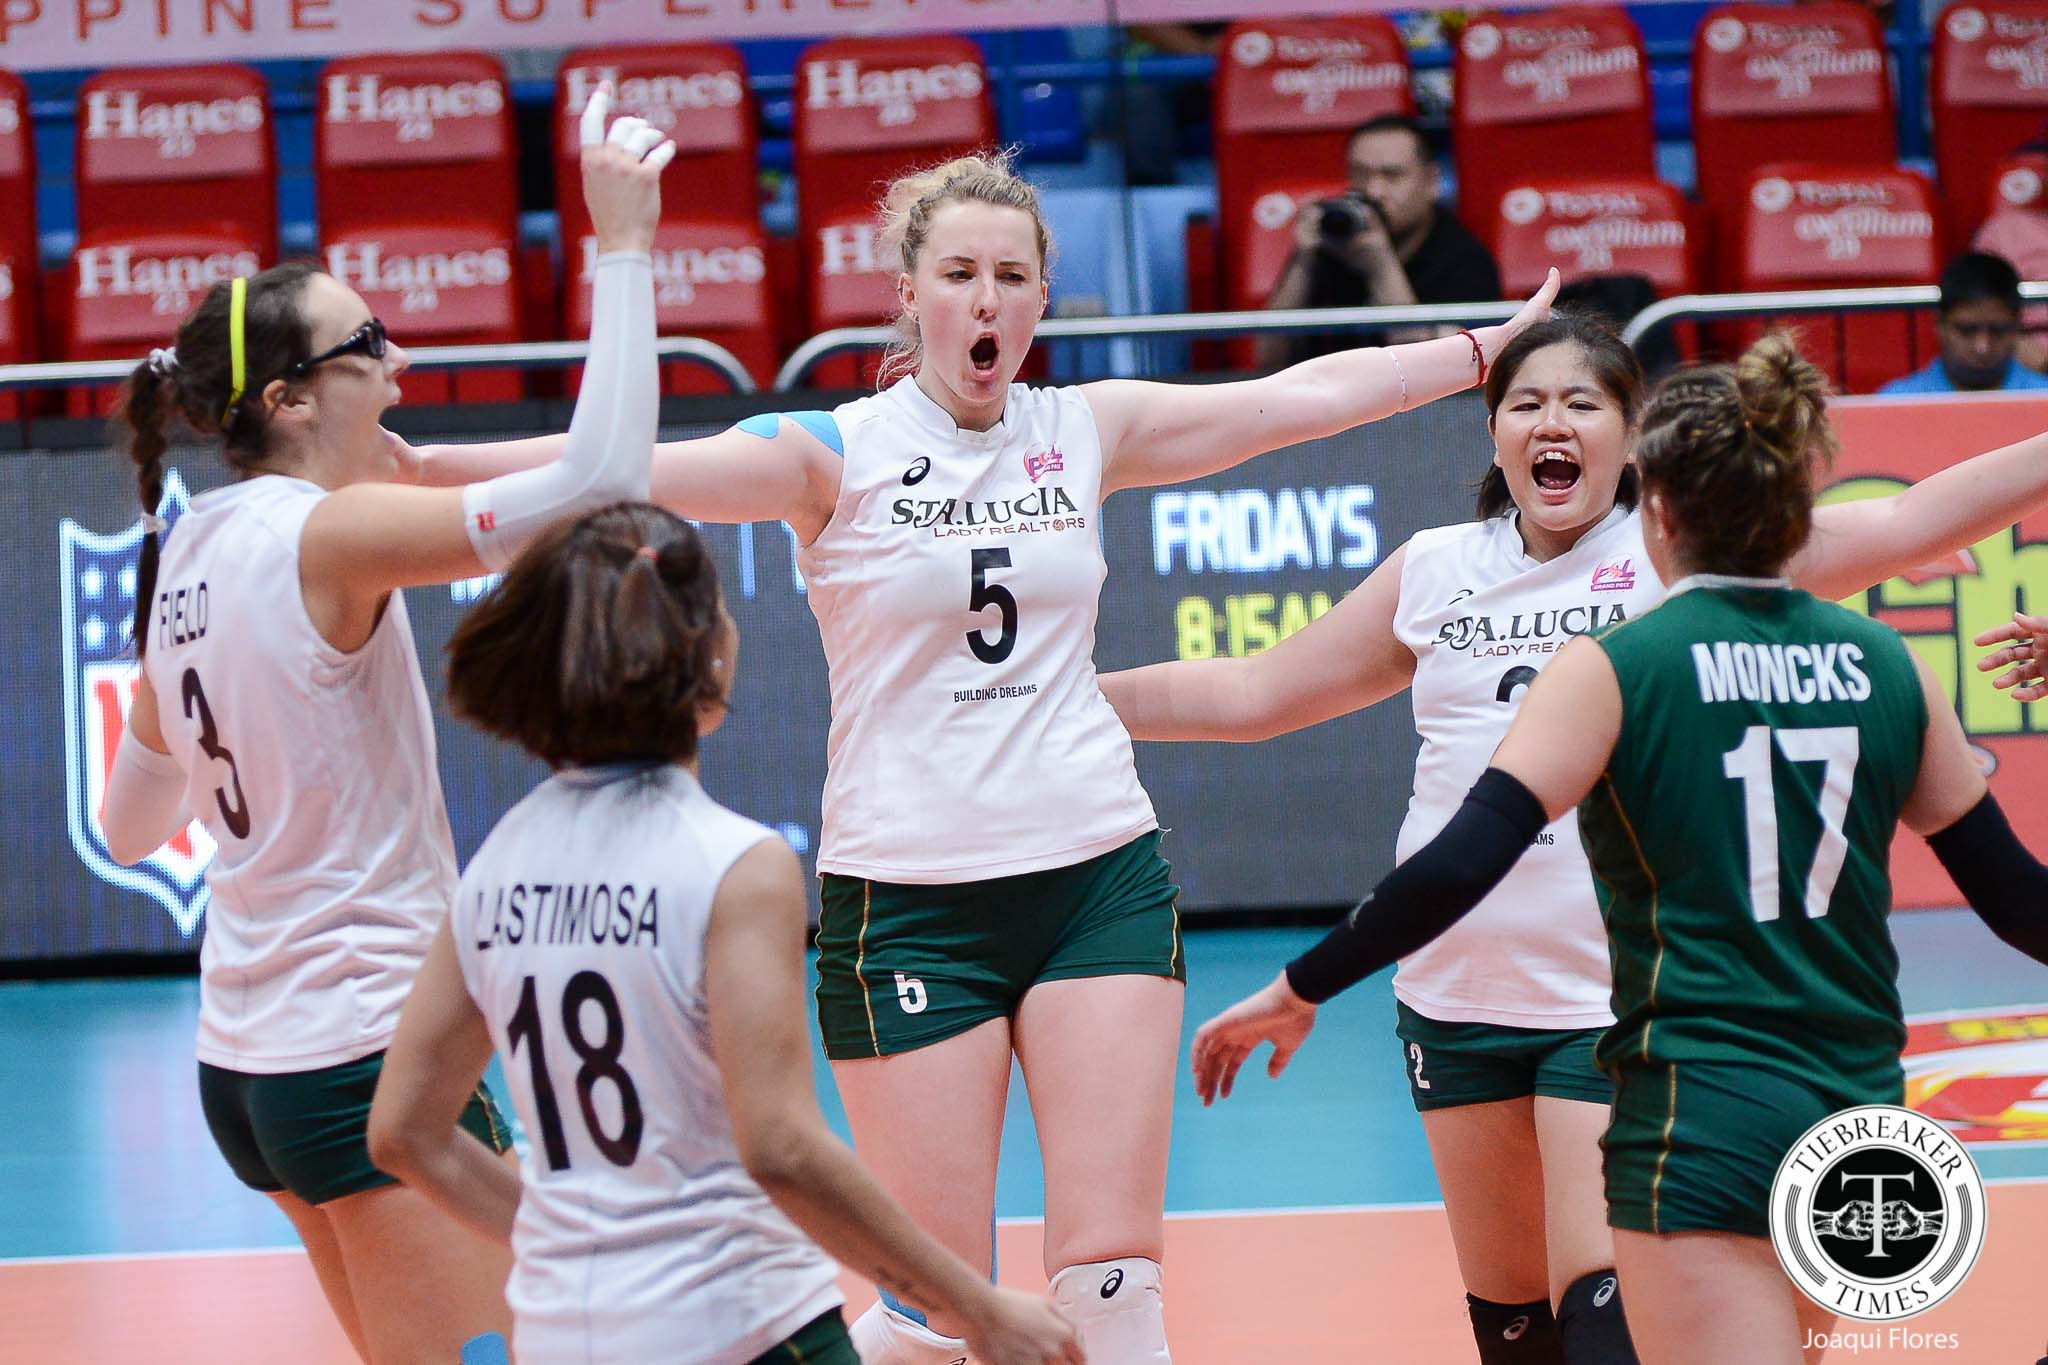 Philippine Sports News - Tiebreaker Times Sta. Lucia comes to life late, rallies past Cocolife News PSL Volleyball  Taylor Milton Tai Manu-Olevao Sta. Lucia Lady Realtors MJ Phillips Marisa Field Kungfu Reyes Kristen Moncks Jerry Yee Djanel Cheng Cocolife Asset Managers Chooks-to-Go Bohdana Anisova 2017 PSL Season 2017 PSL Grand Prix